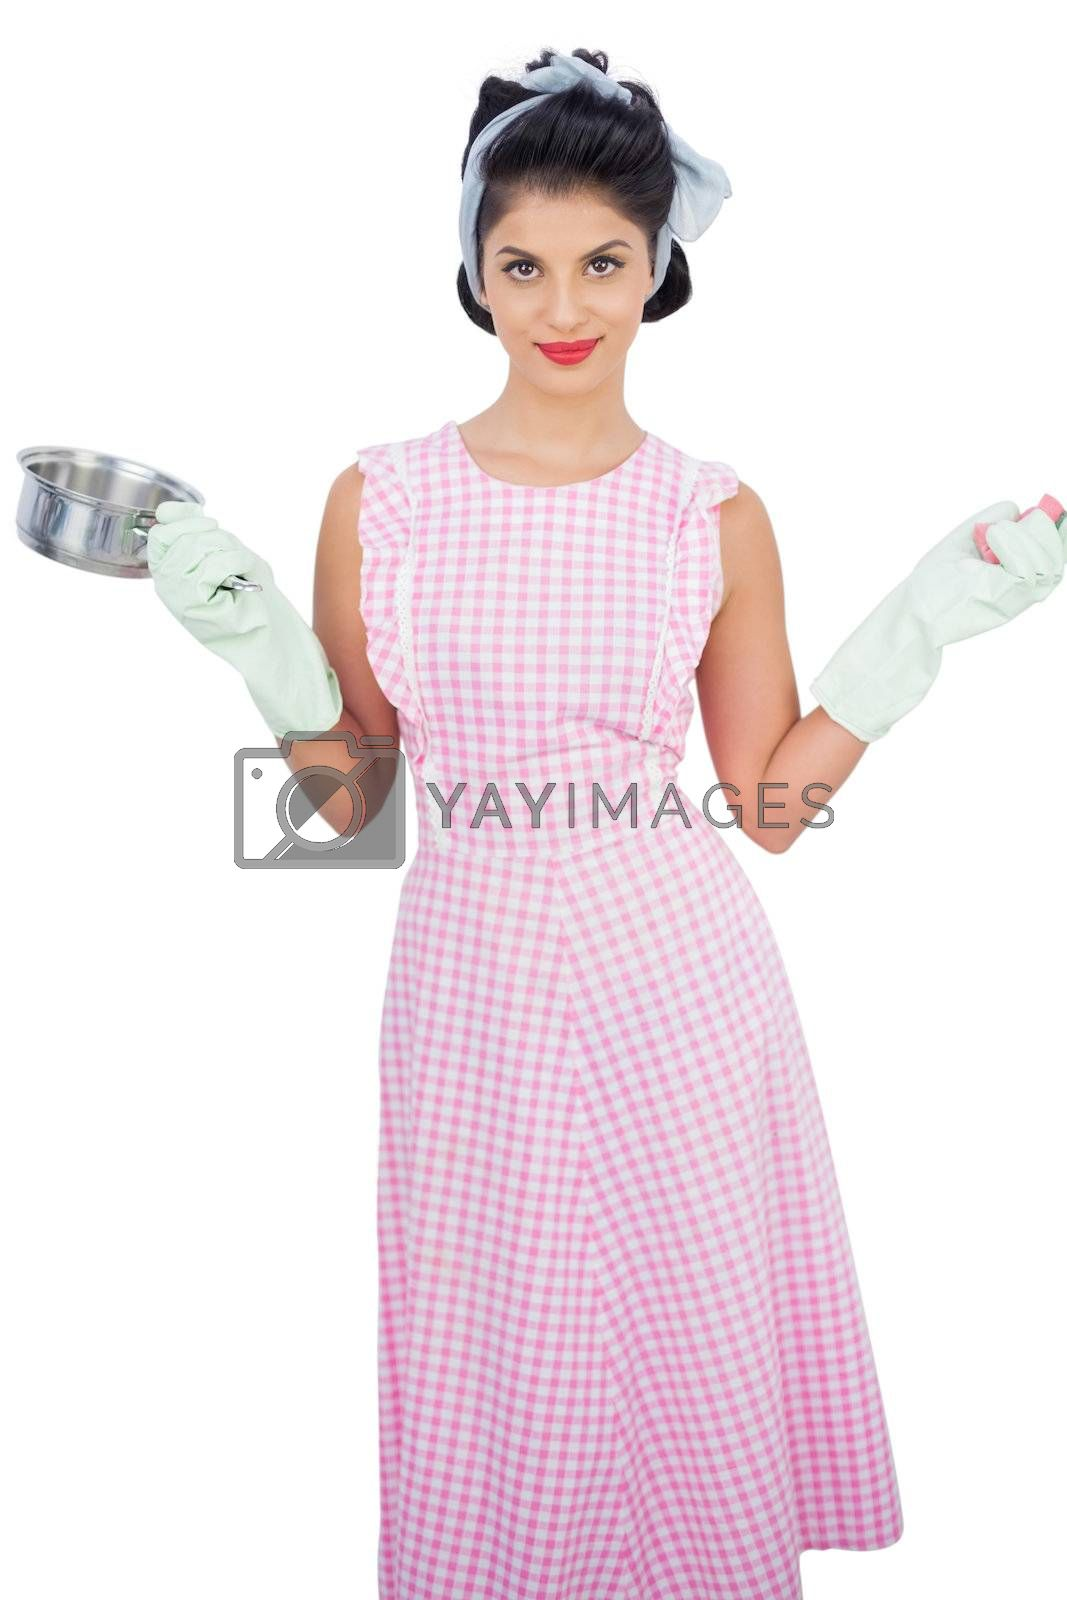 Smiling black hair model holding a pan and wearing rubber gloves by Wavebreakmedia